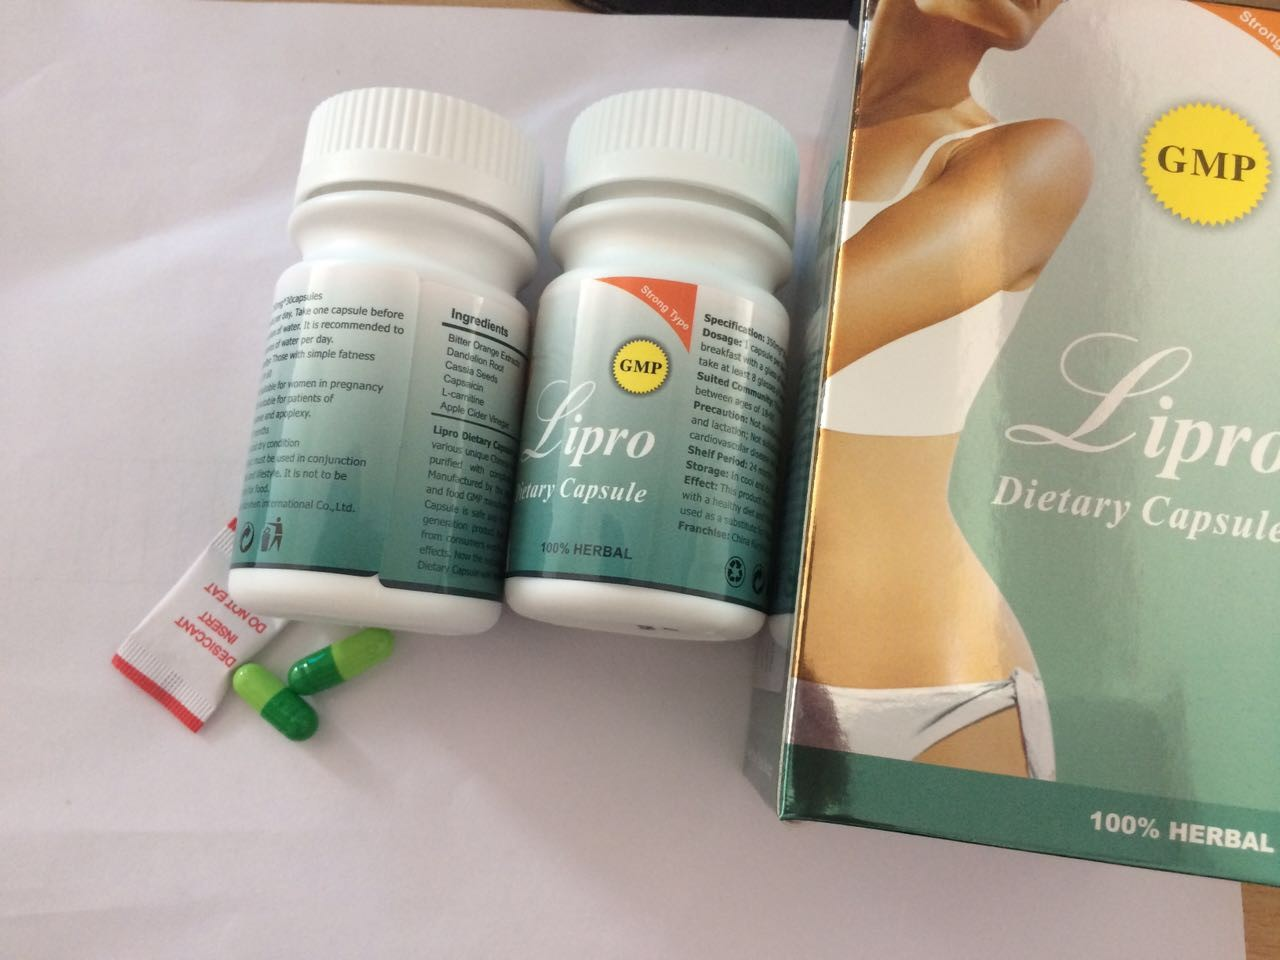 Lipro Slimming Dietary Capsules Lipro Magnetc Belly Slim Patch